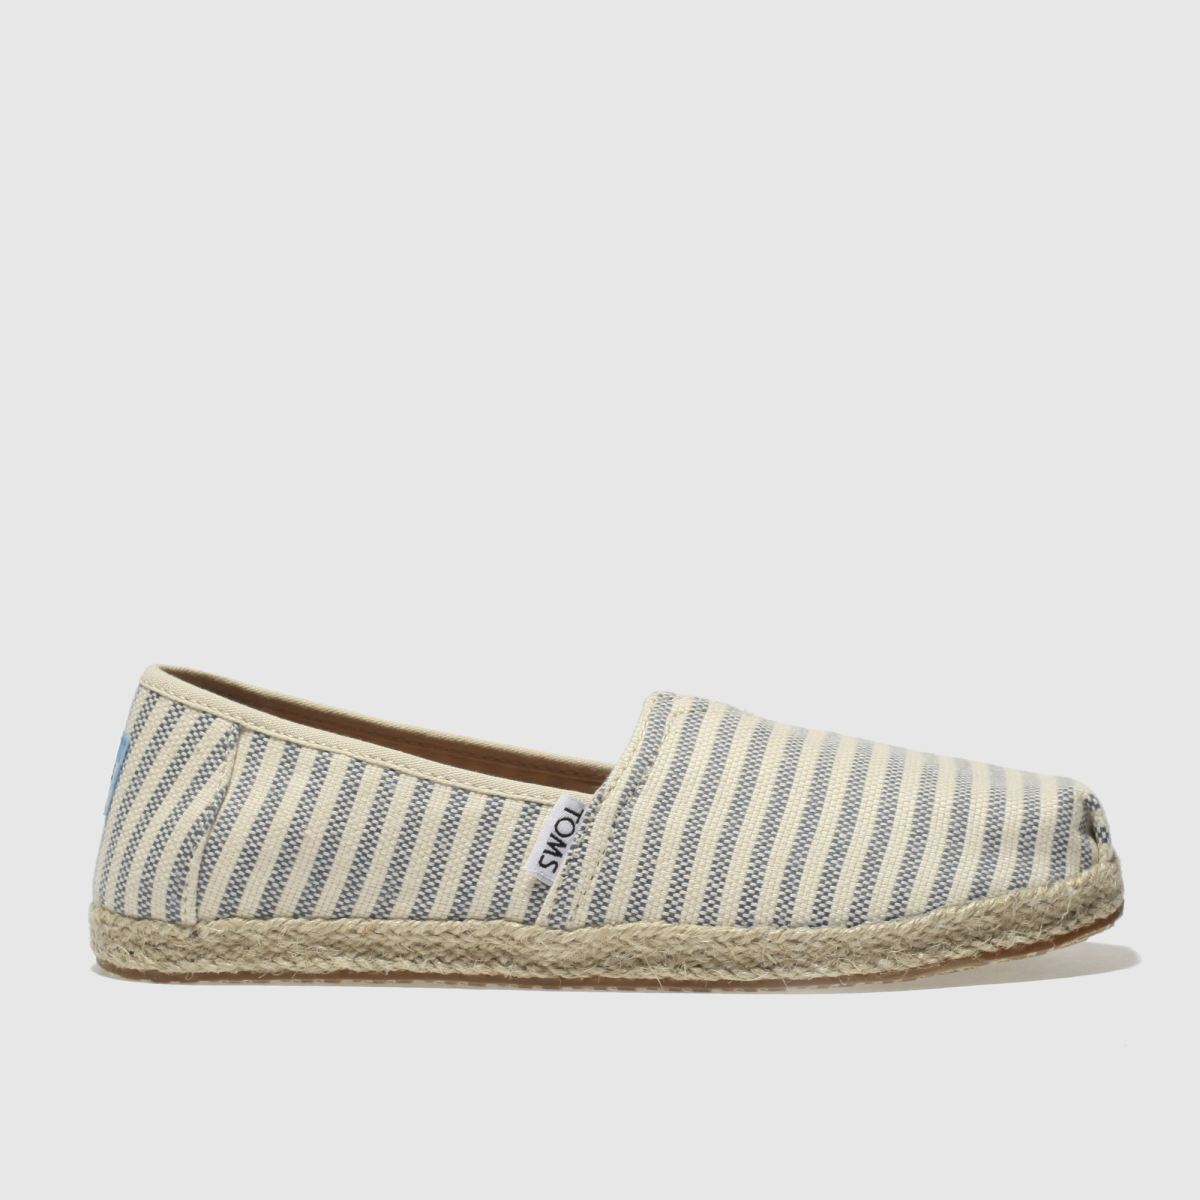 Toms Navy & Cream Classic Youth Shoes